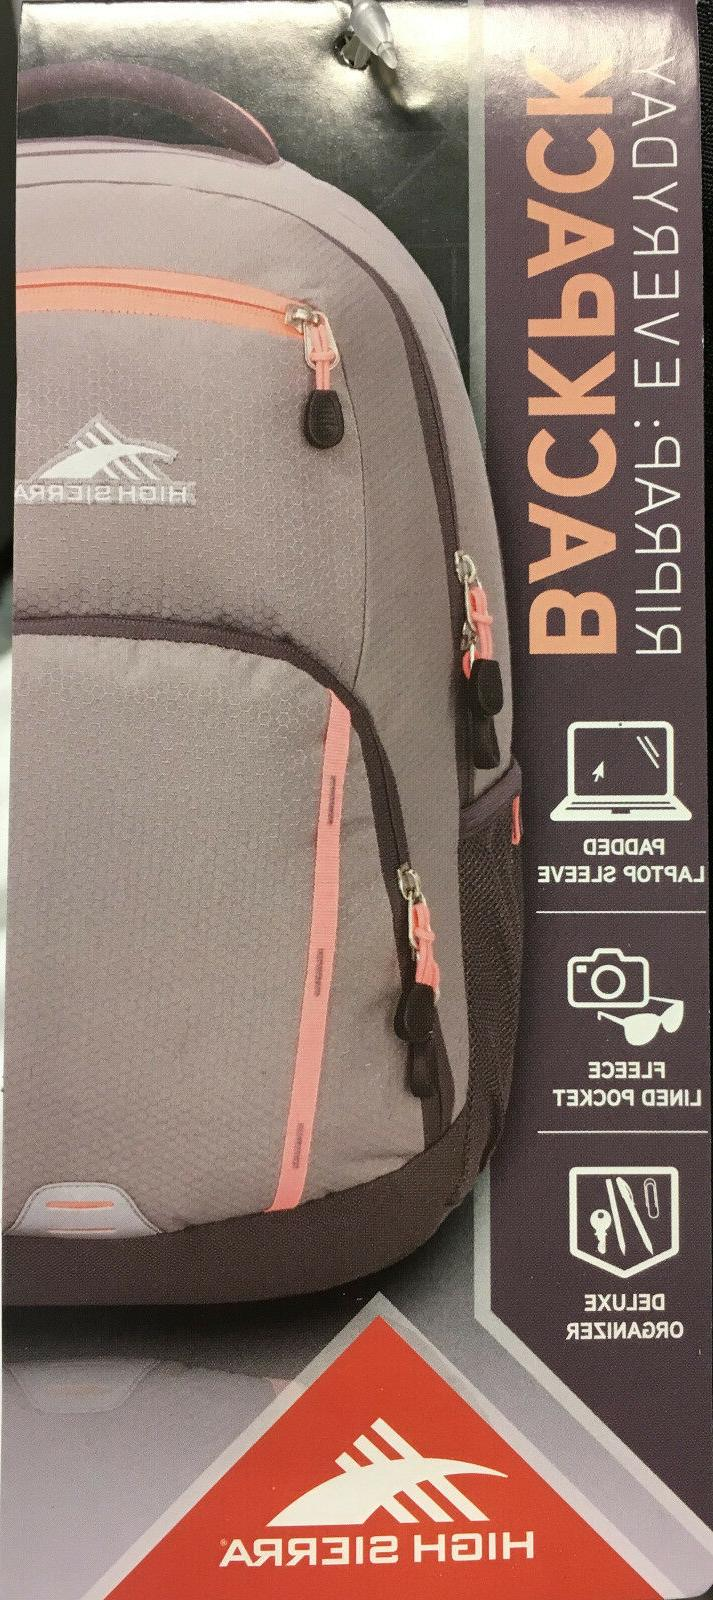 NEW High Sierra Backpack Everyday RIPRAP Black Organizer 19 x 8.5